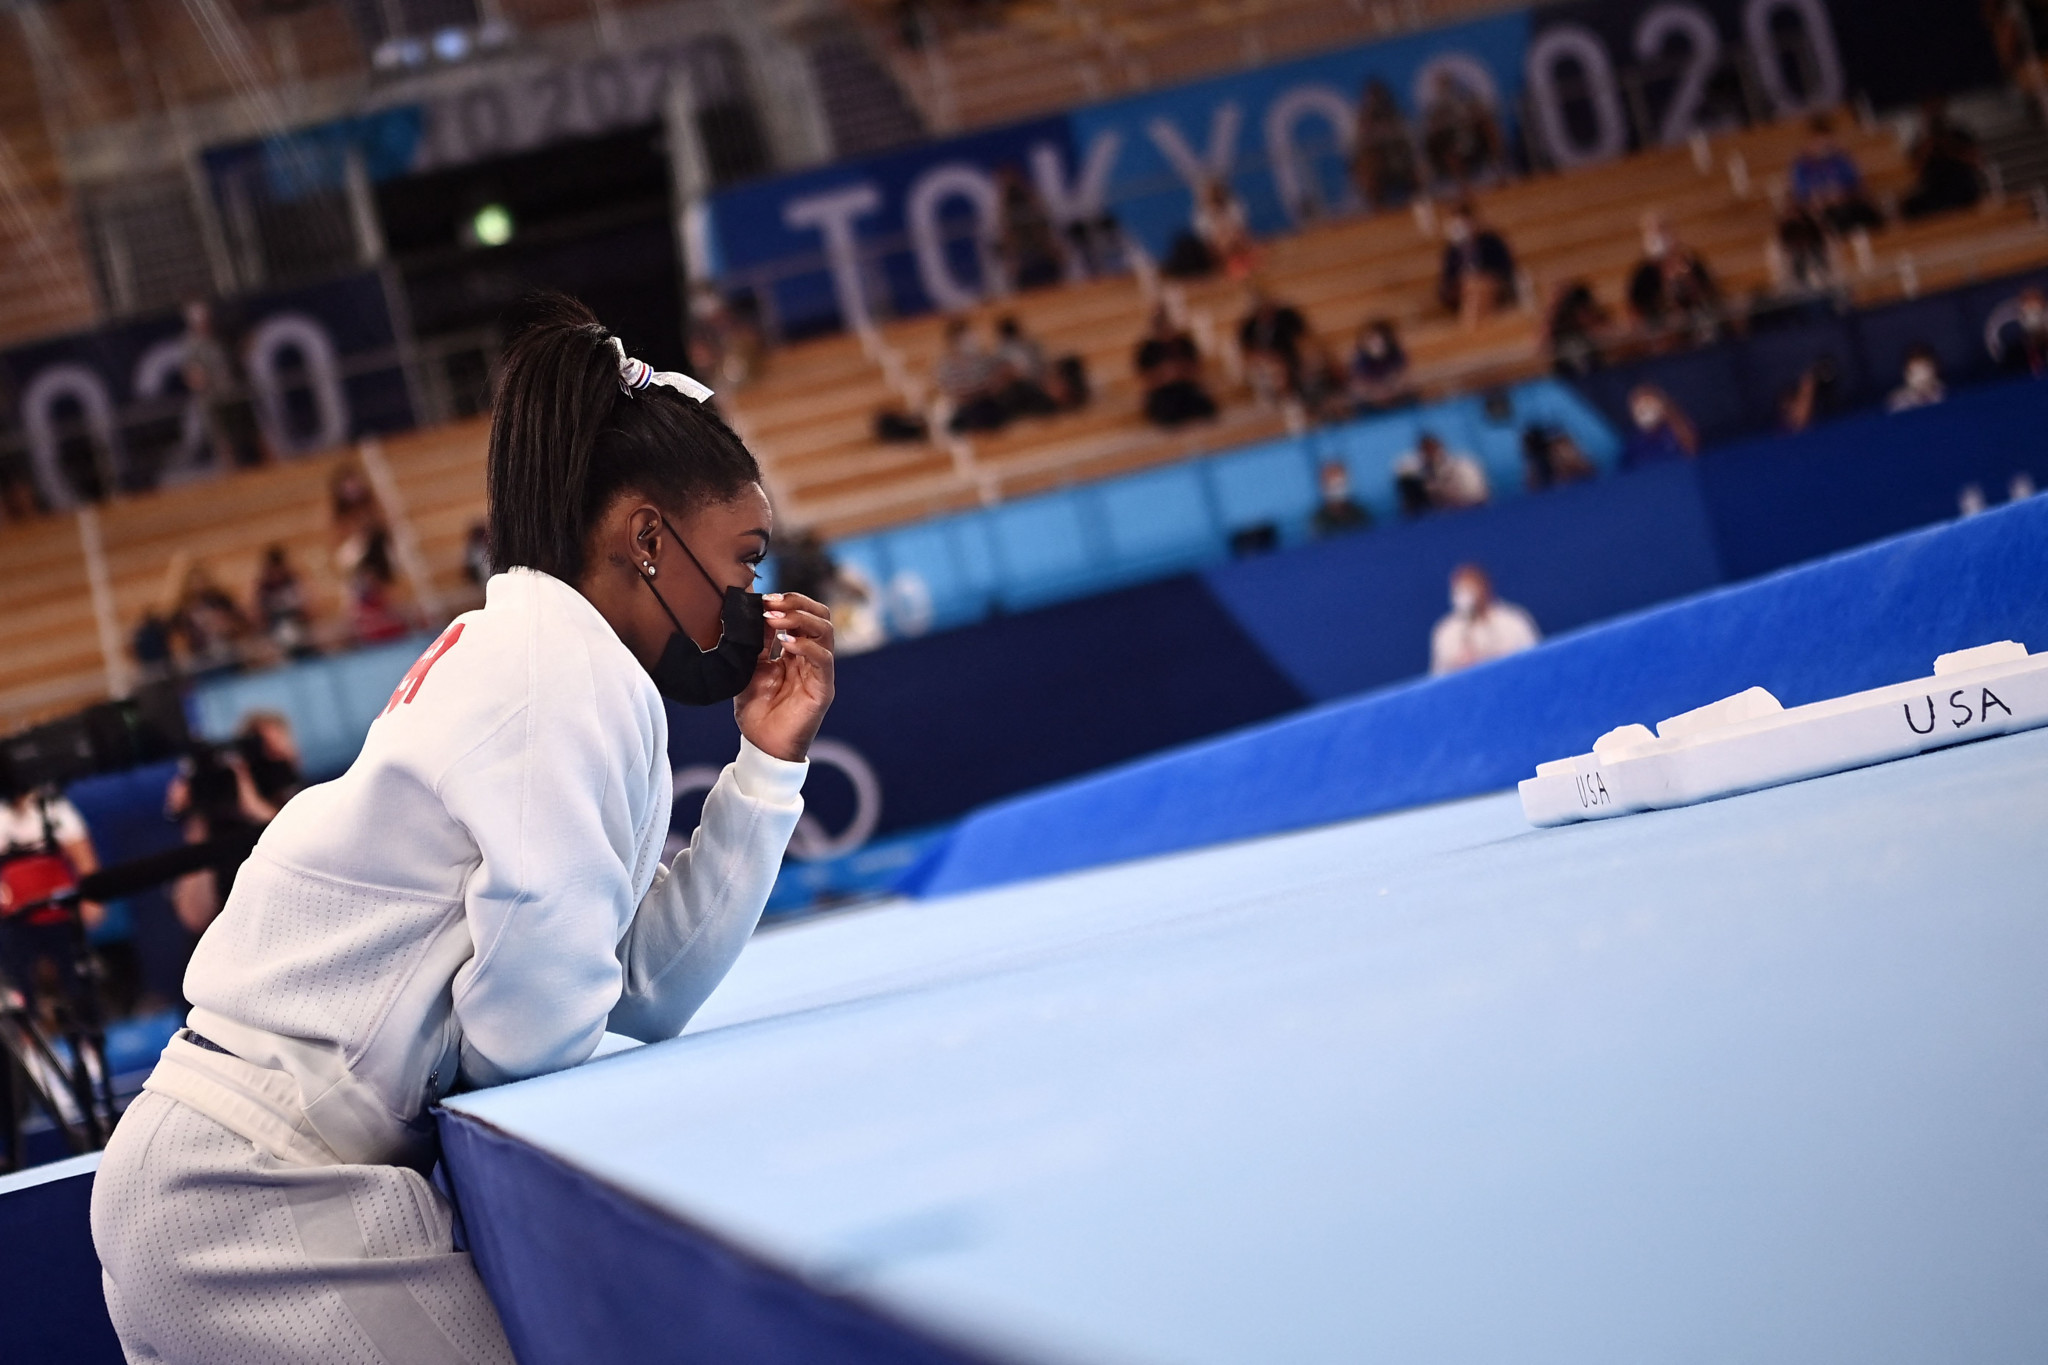 """The main talking point was the absence of Simon Biles, who withdrew after one piece of apparatus and said afterwards that she did so to """"focus on my mental health and not jeopardise my health and well-being"""" ©Getty Images"""